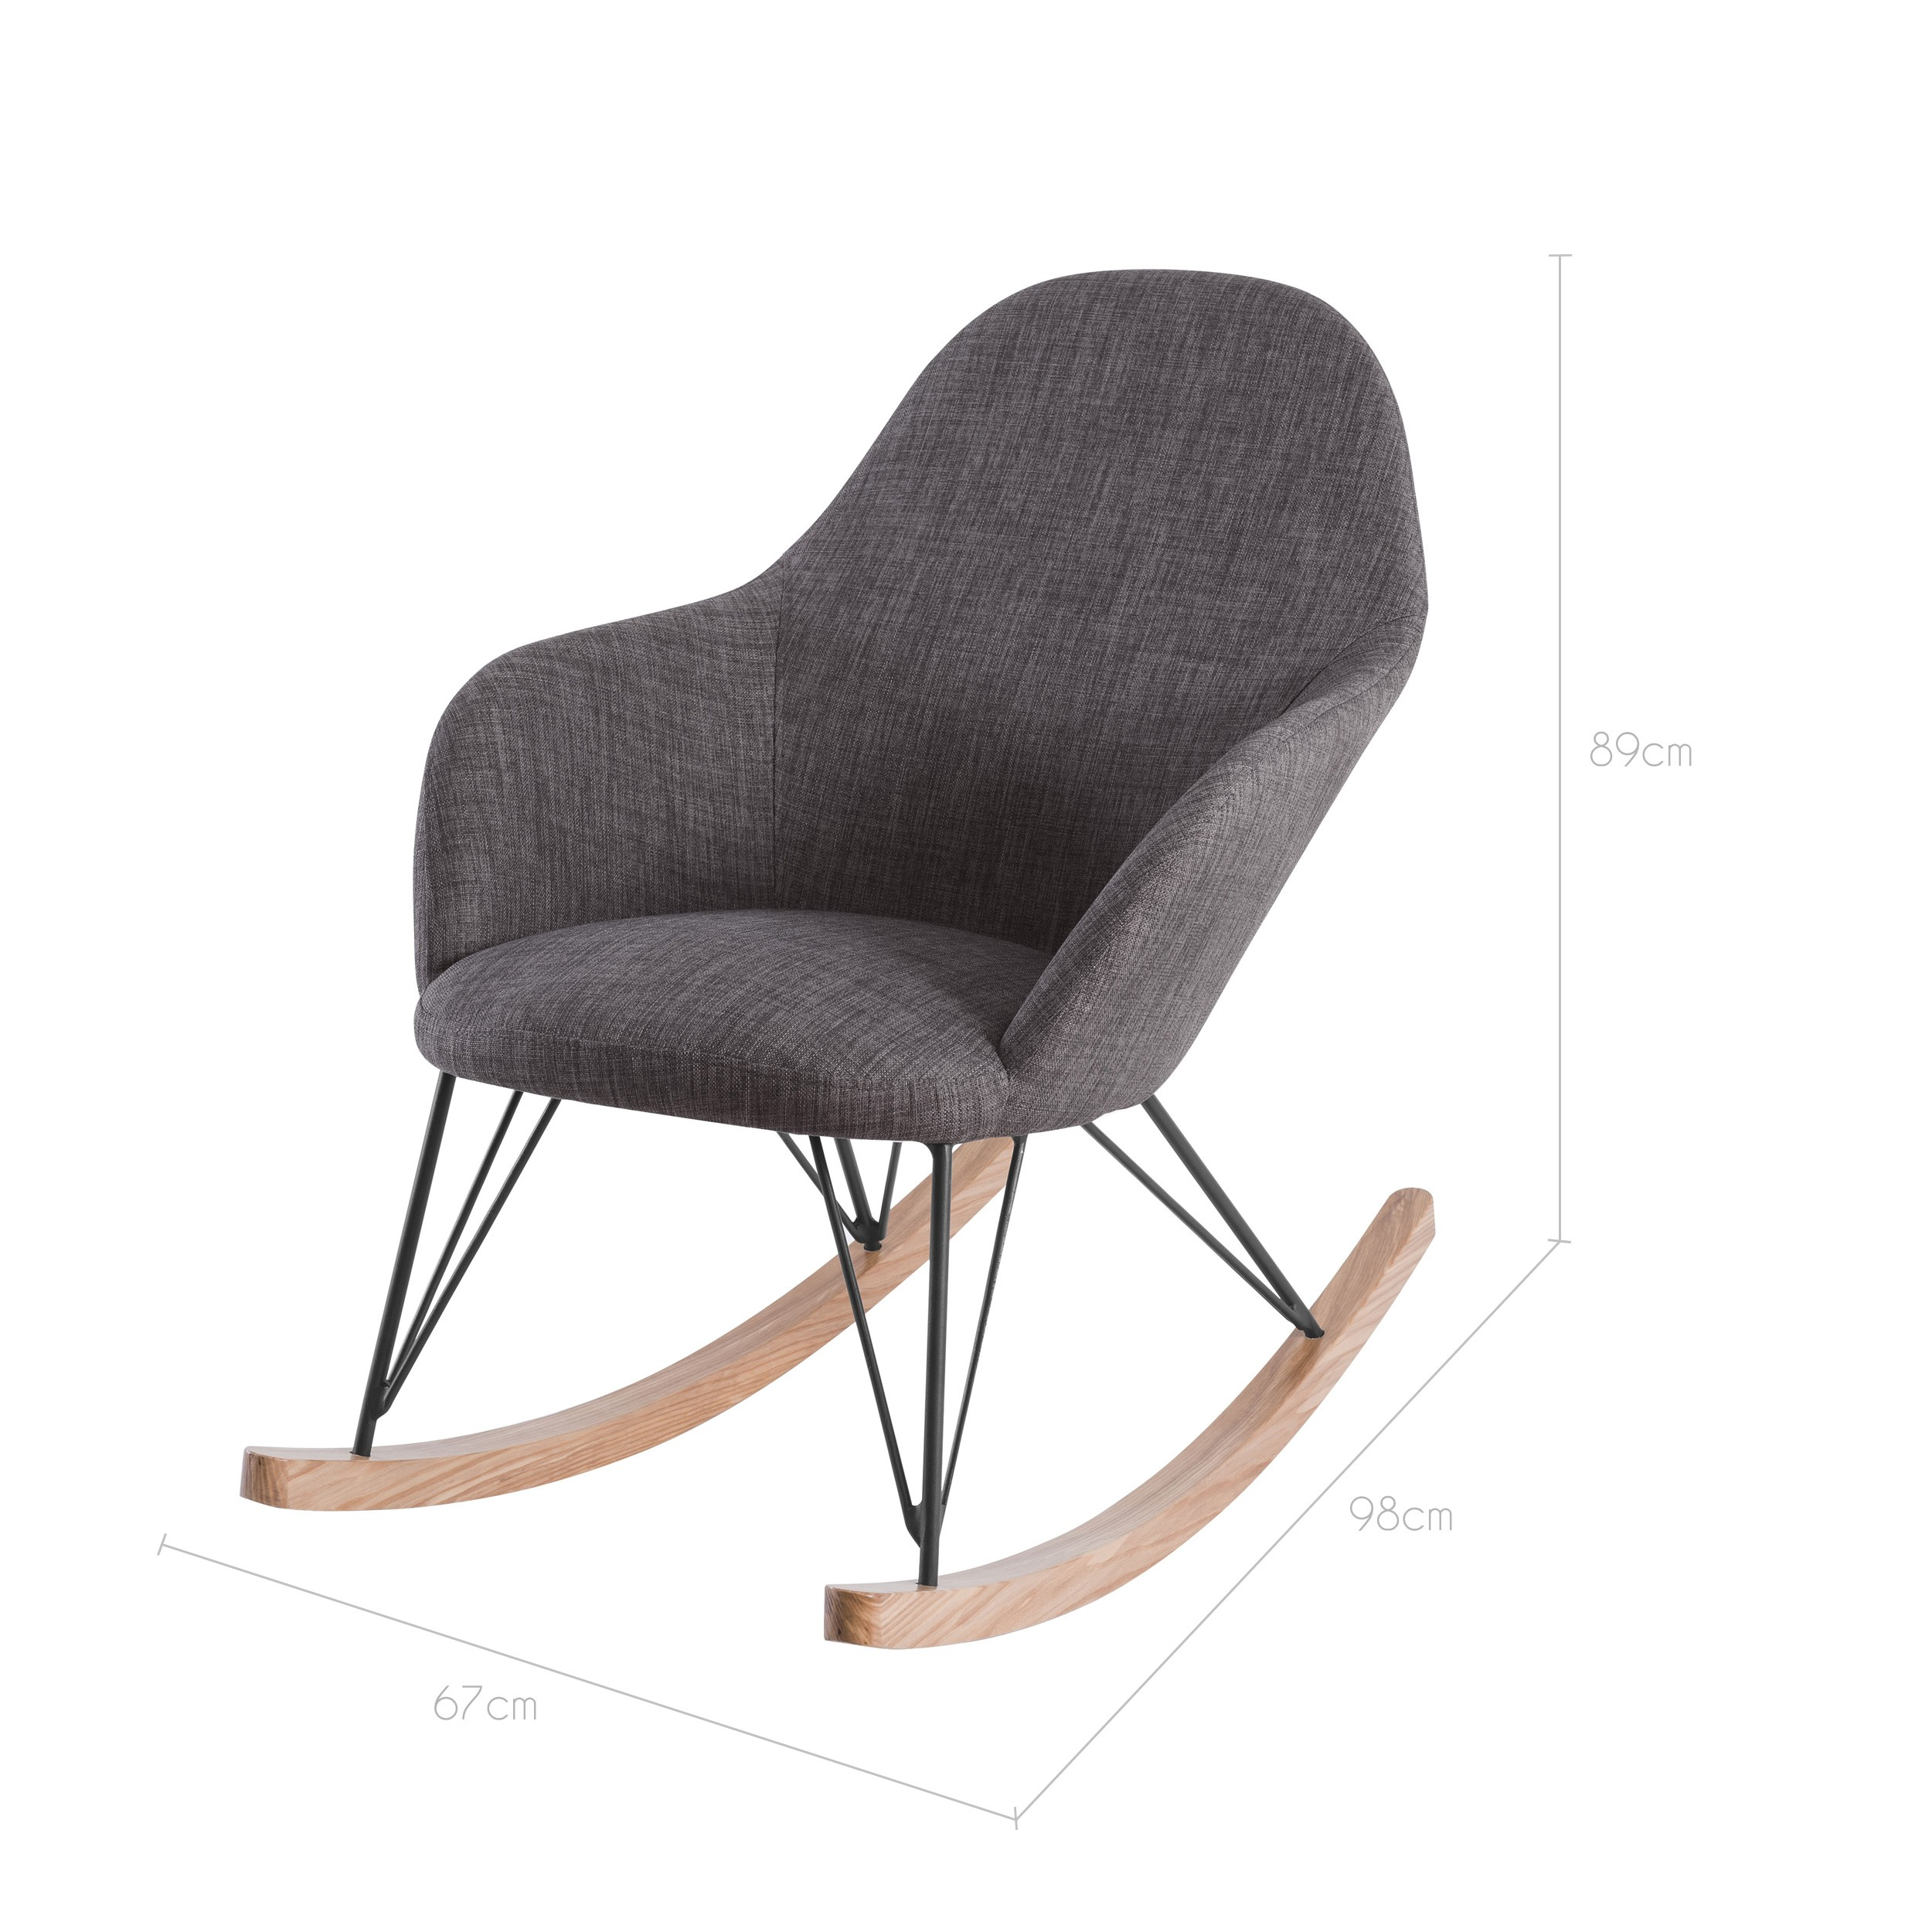 Chaise Rocking Chair Vente Rocking Chair Vente Rocking Chair With Vente